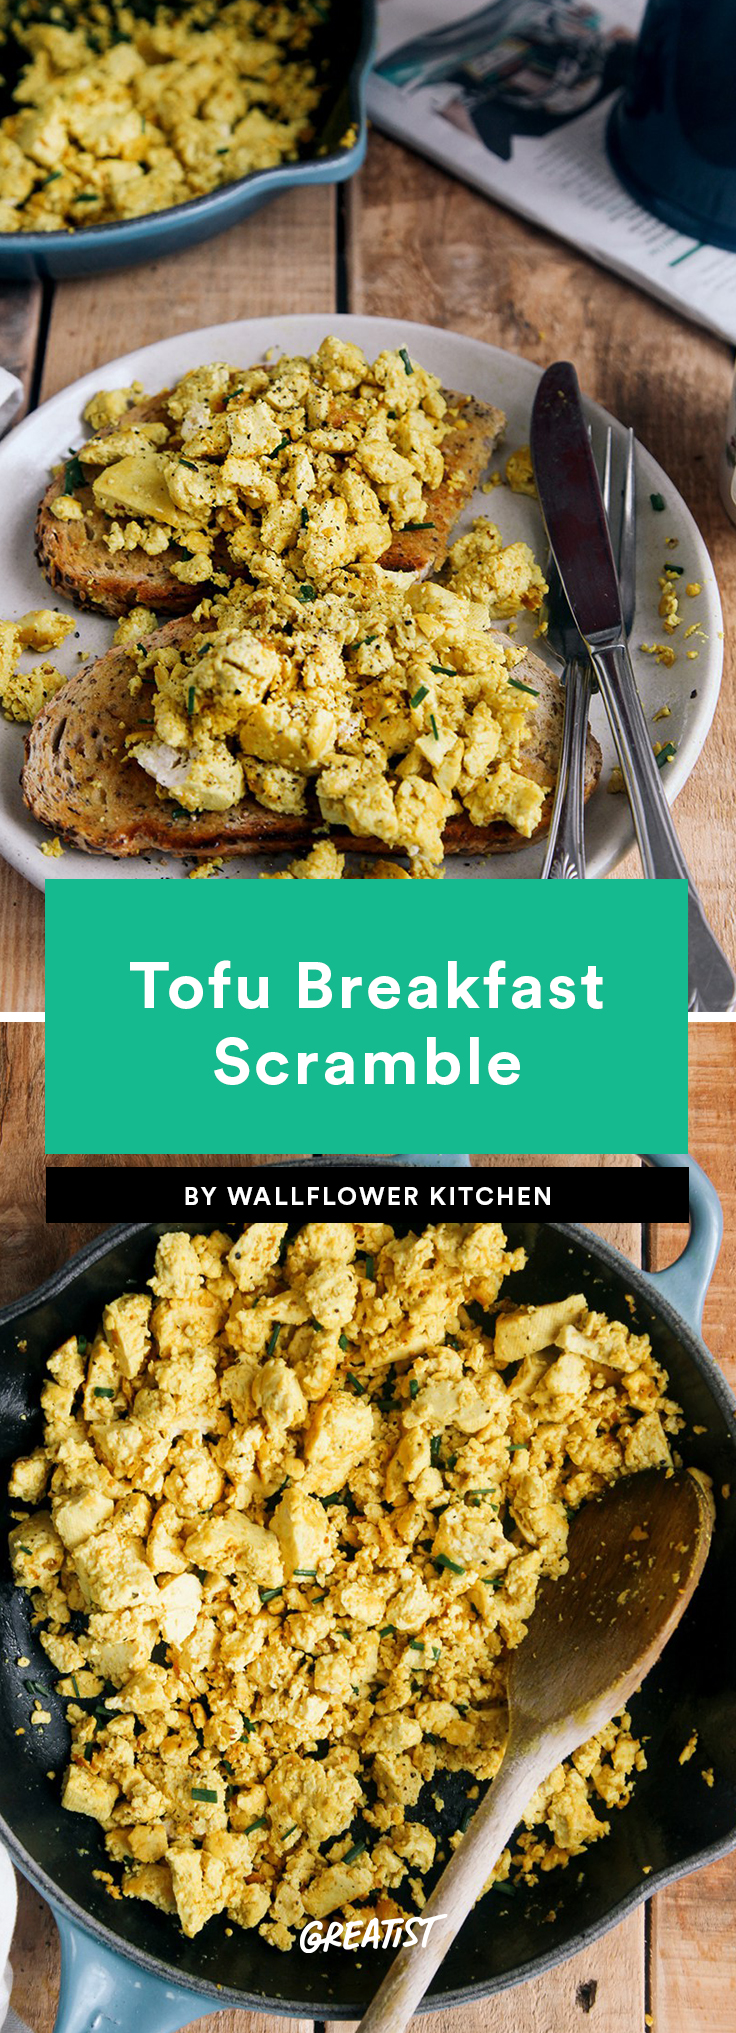 Vegan Breakfast: 7 Recipes to Give You a Break From Eggs   Greatist